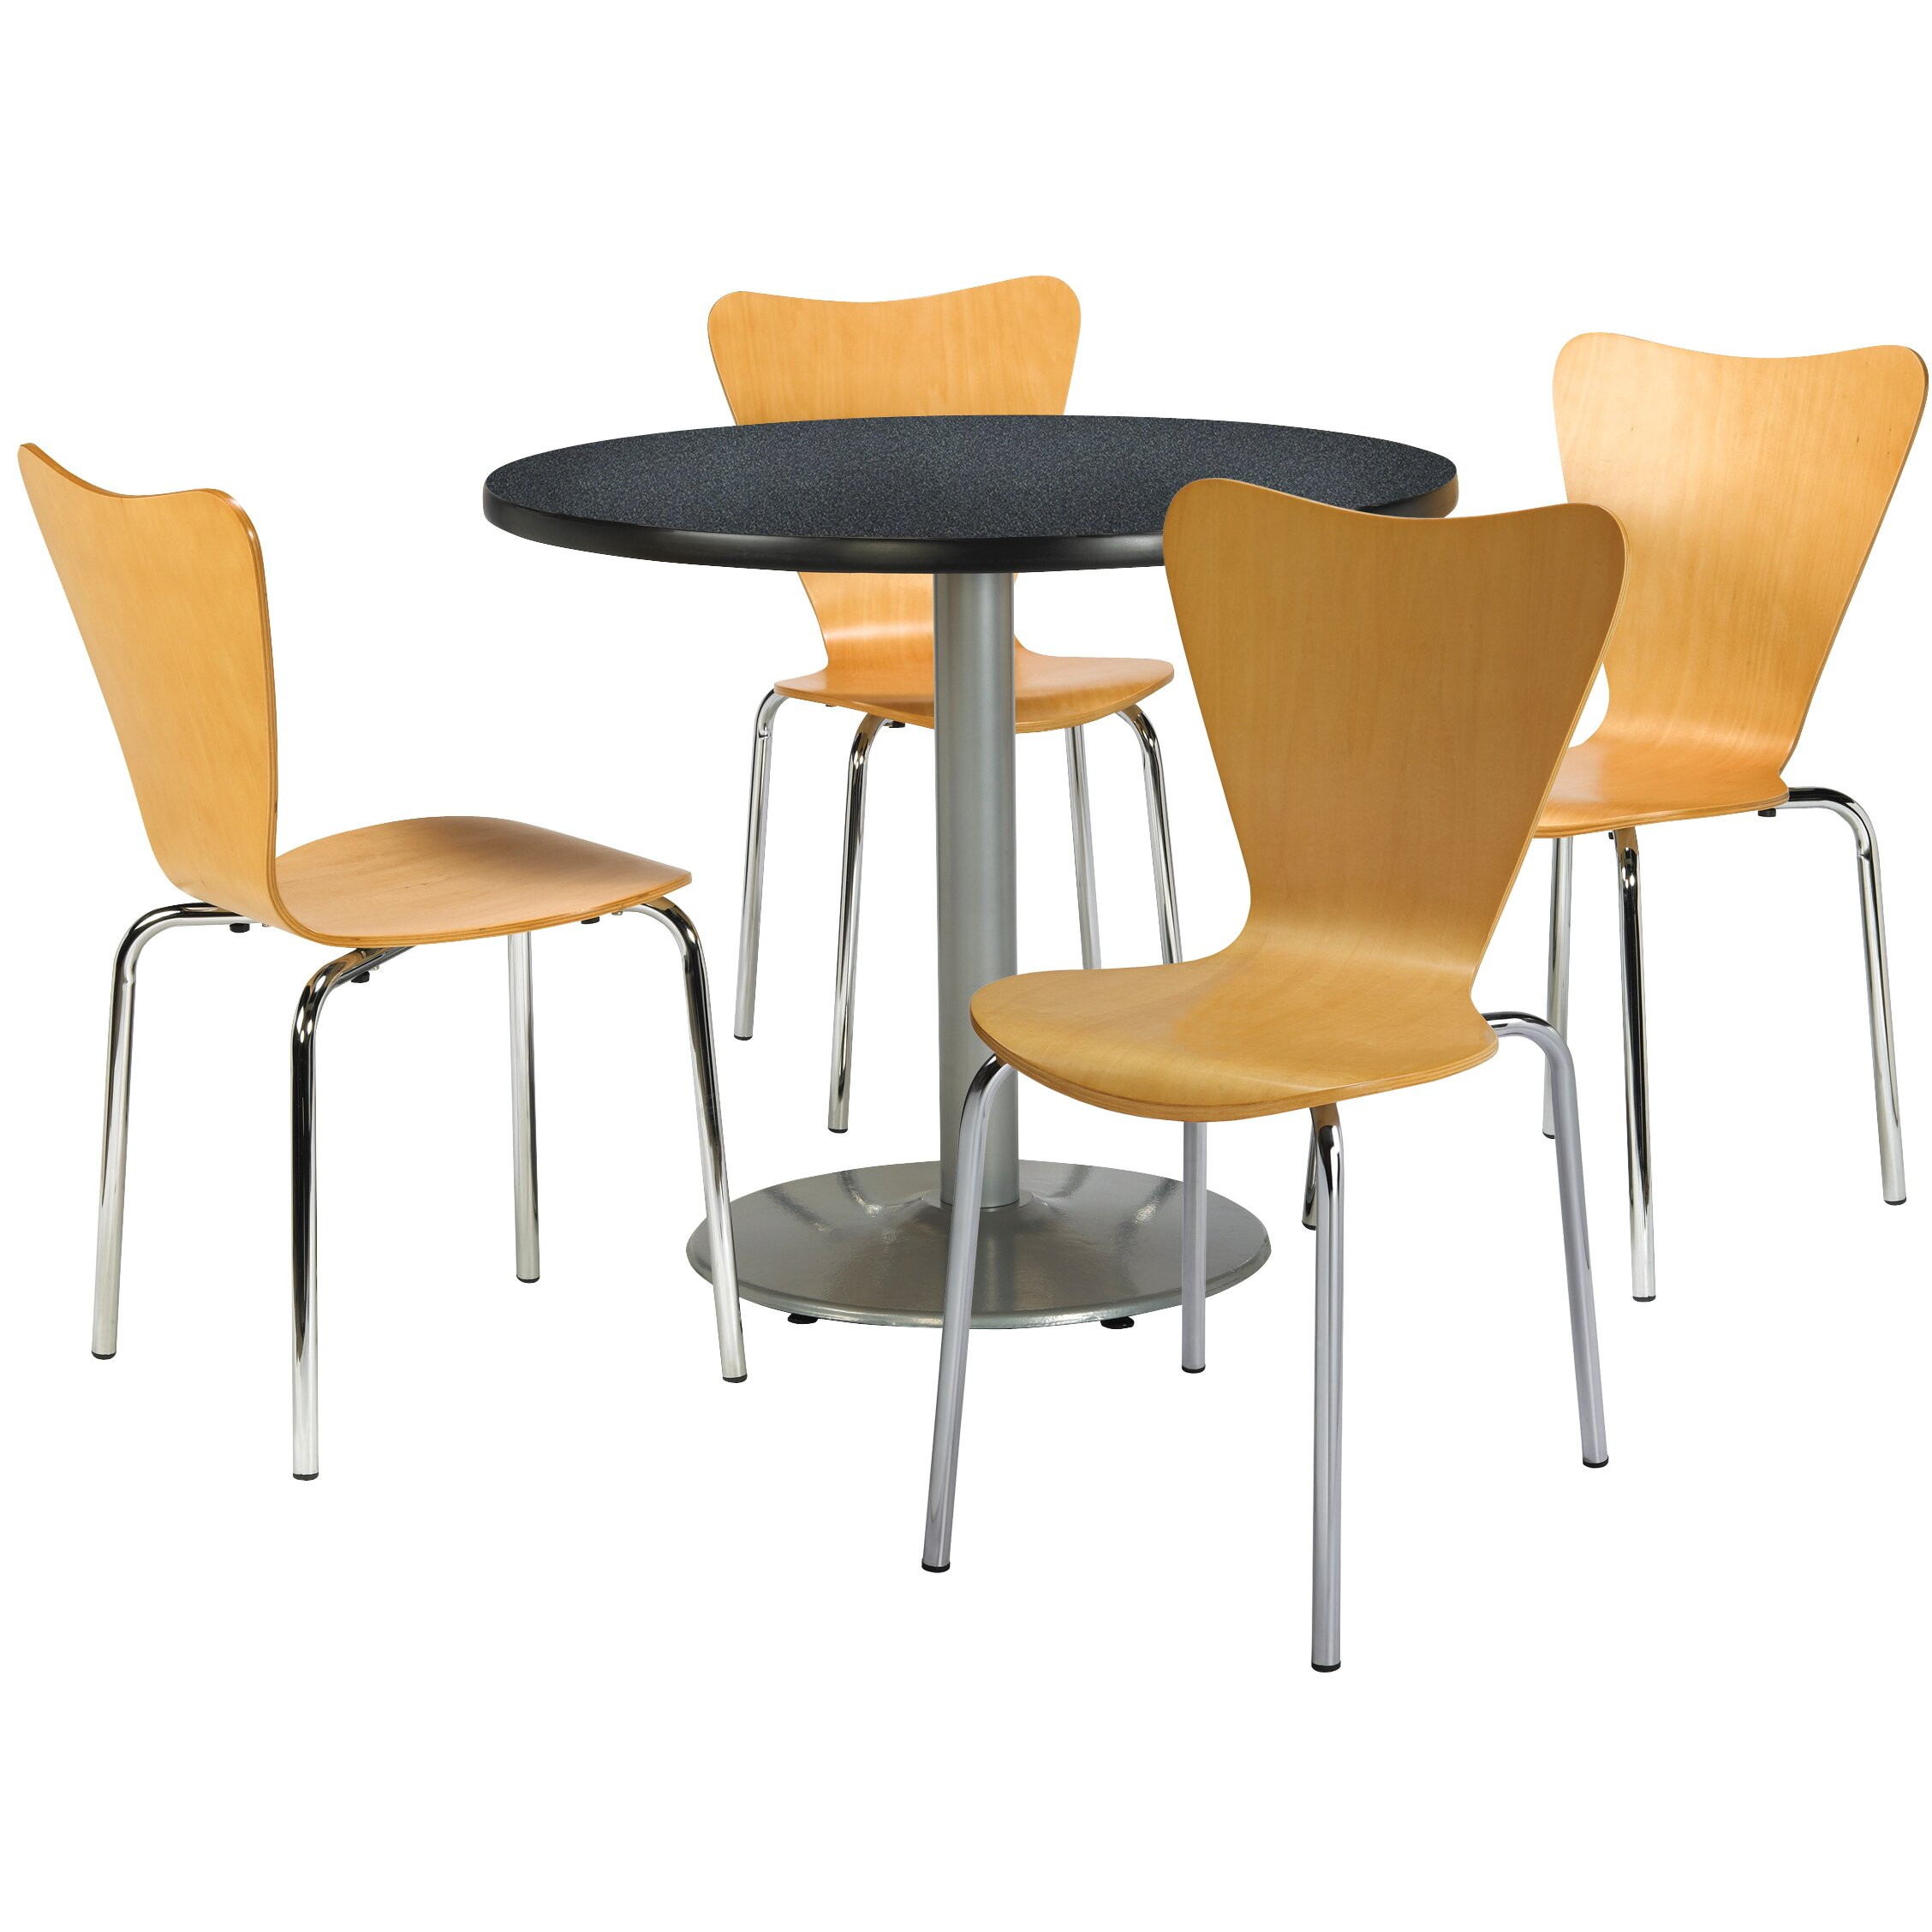 Lunchroom tables and chairs regency regency square for School furniture 4 less reviews